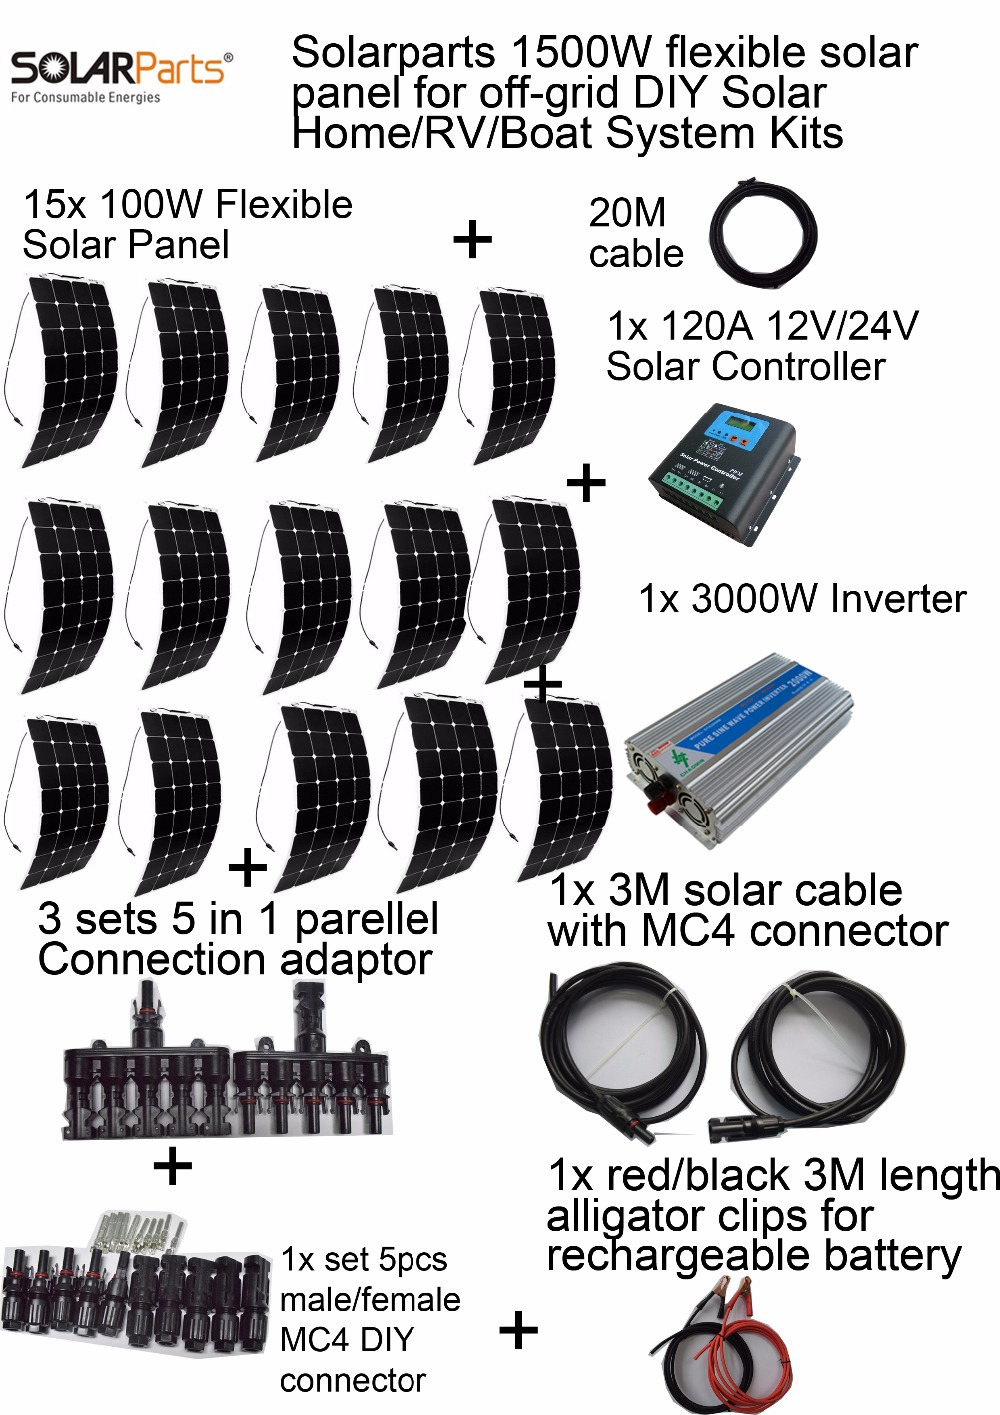 solarparts 1500w off grid solar system kits flexible solar